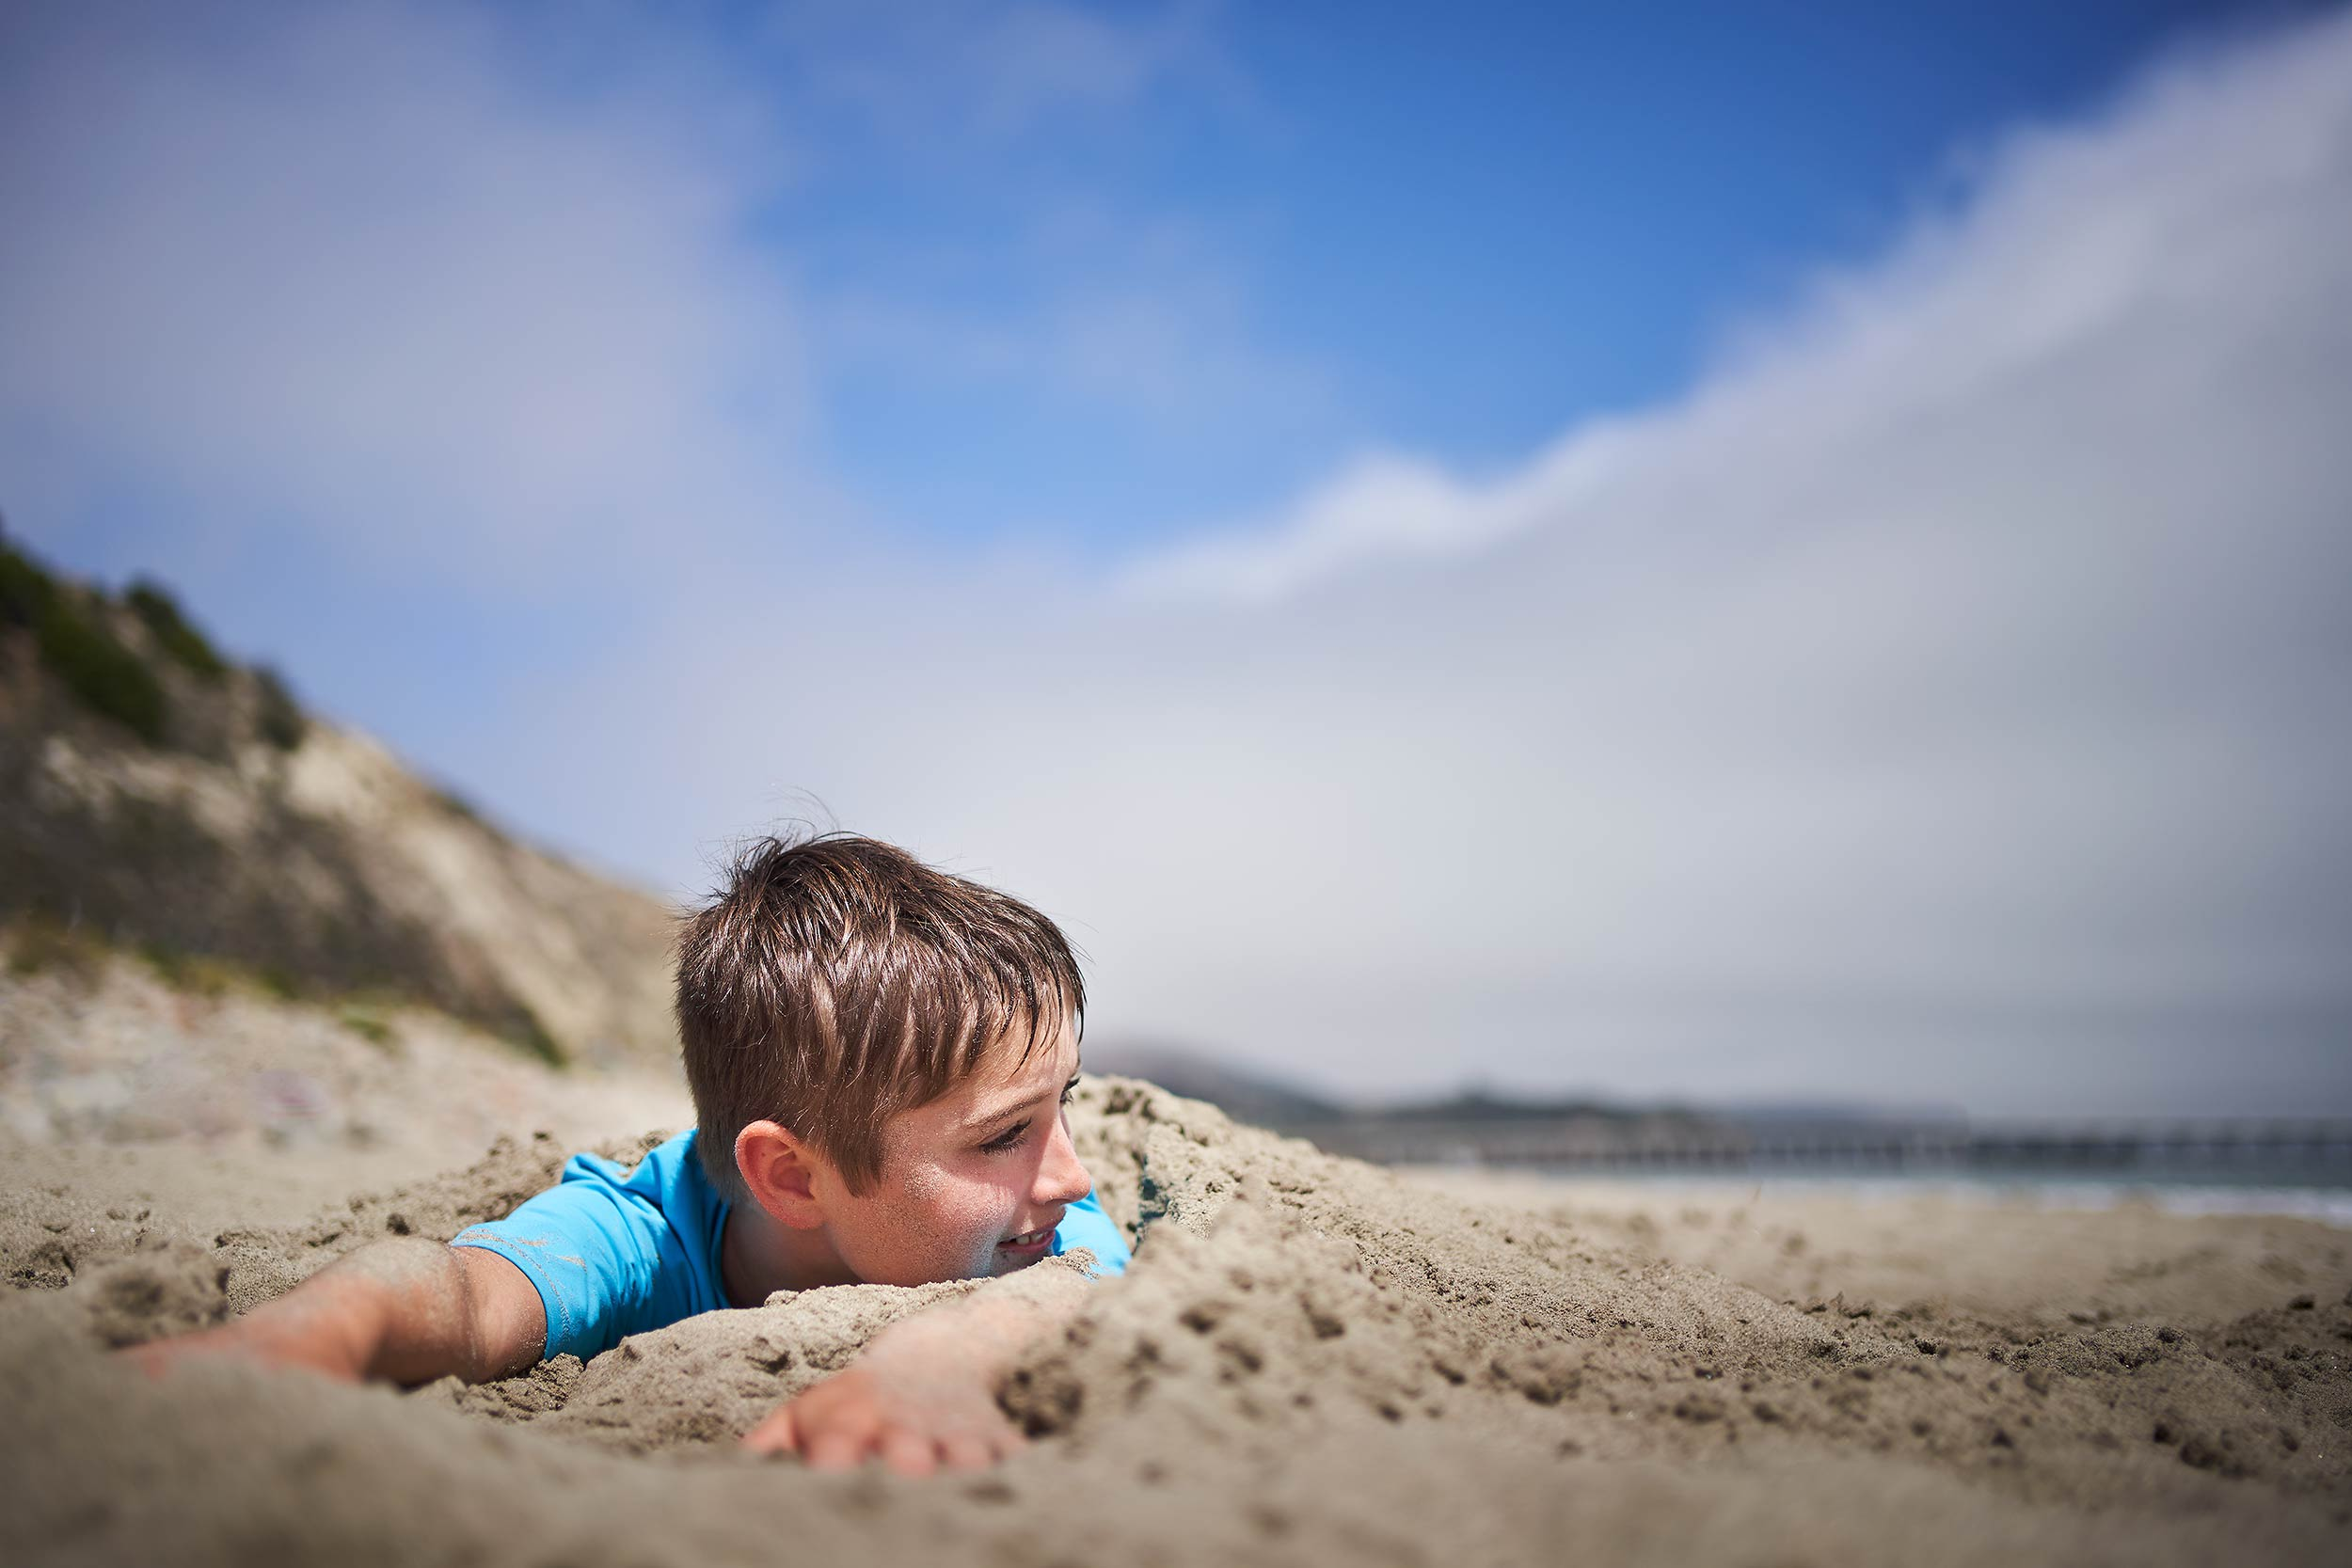 avila_beach_family_0046-sand-bury-boy